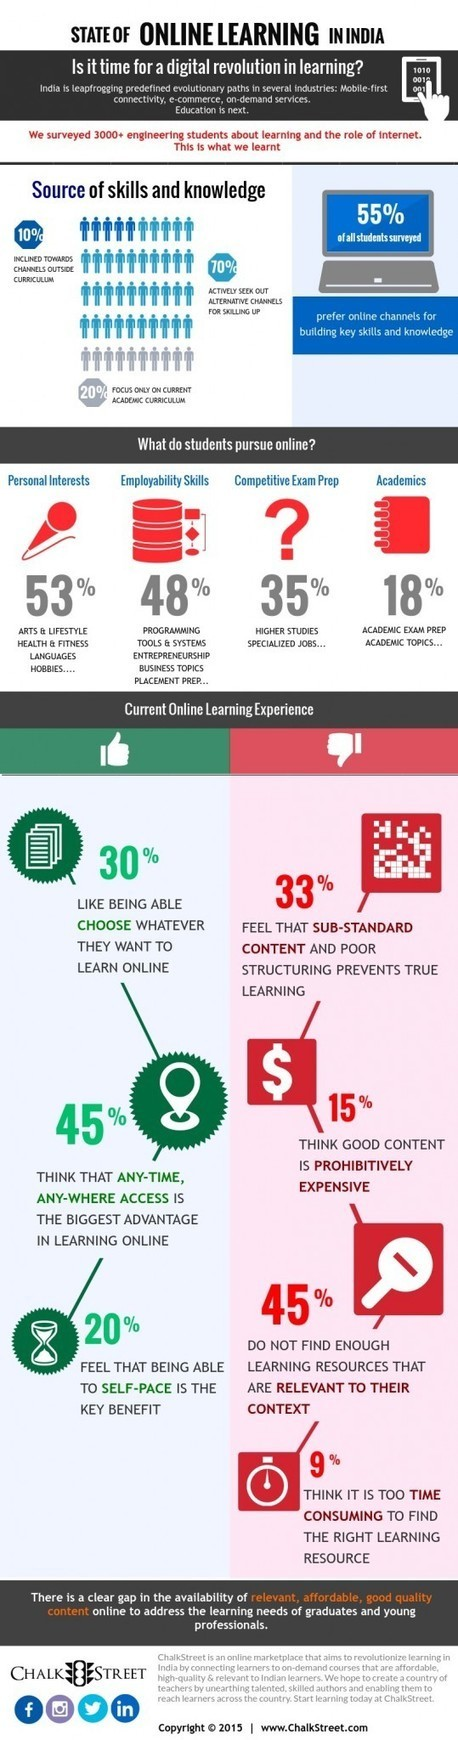 Online Learning in India Infographic | Pedagogy and technology of online learning | Scoop.it